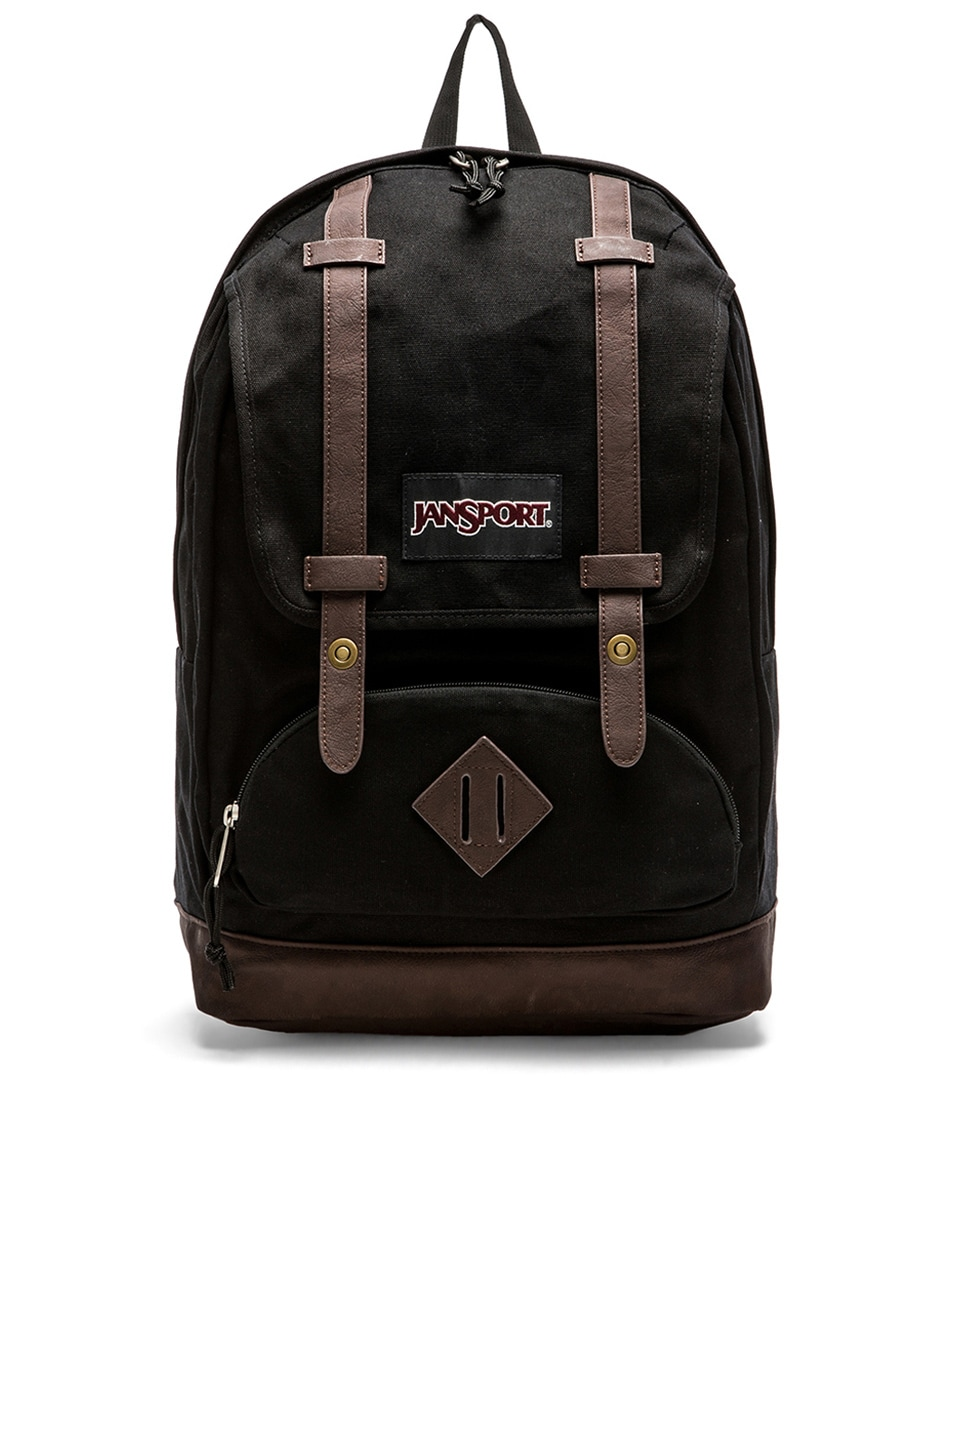 Jansport Baughman Backpack in Black